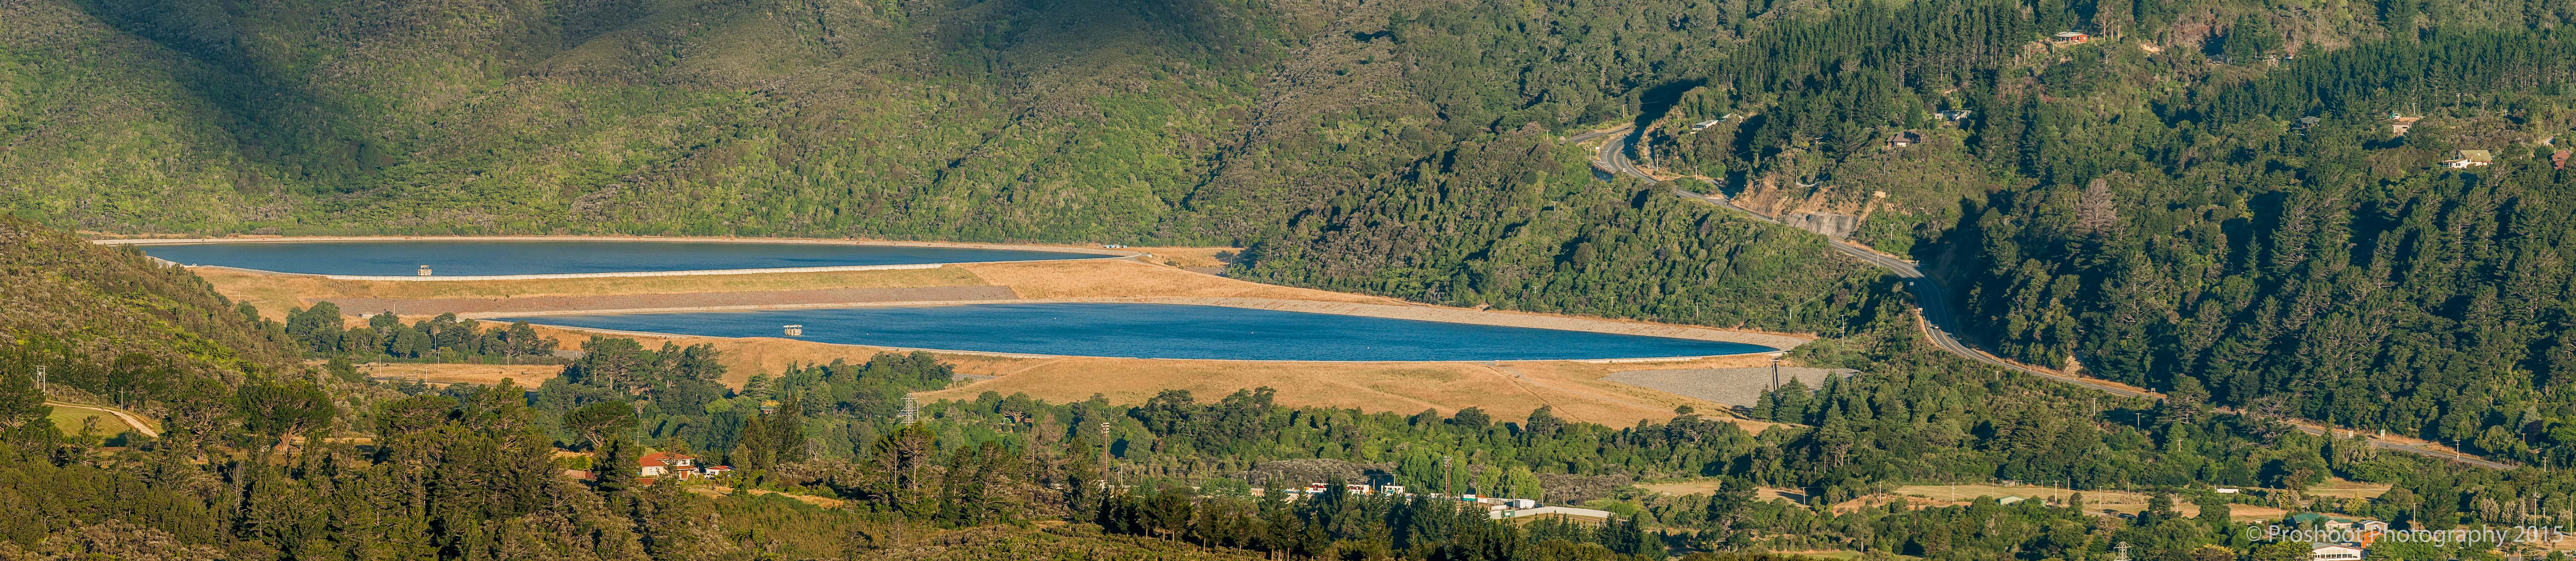 Upper Hutt's Twin Lakes 1554